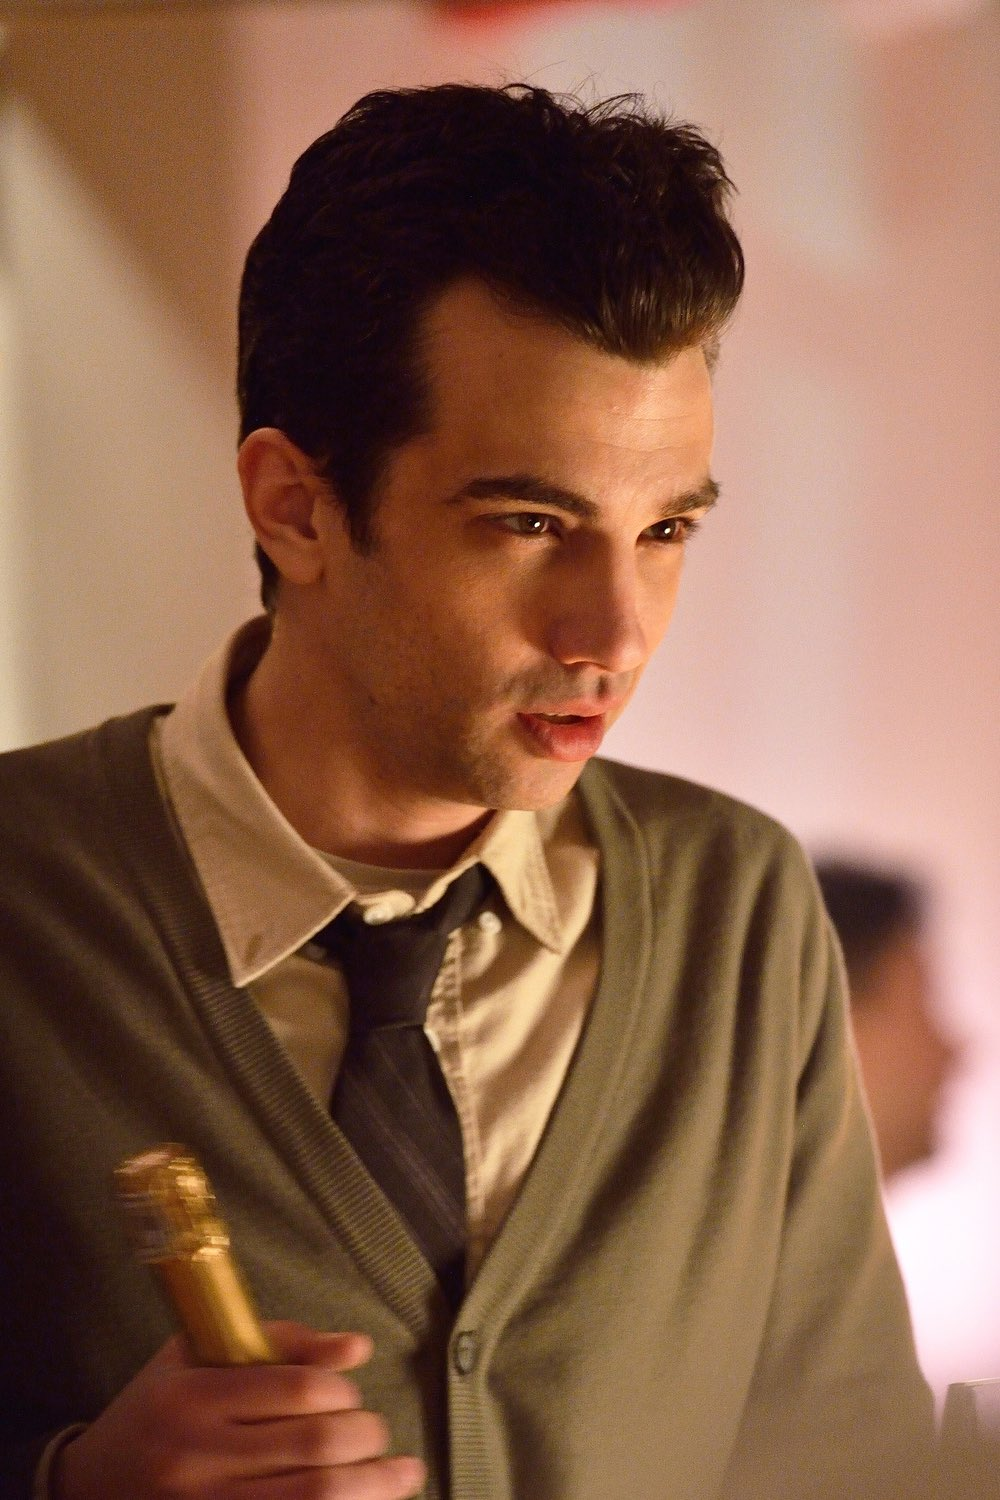 Man seeking women means